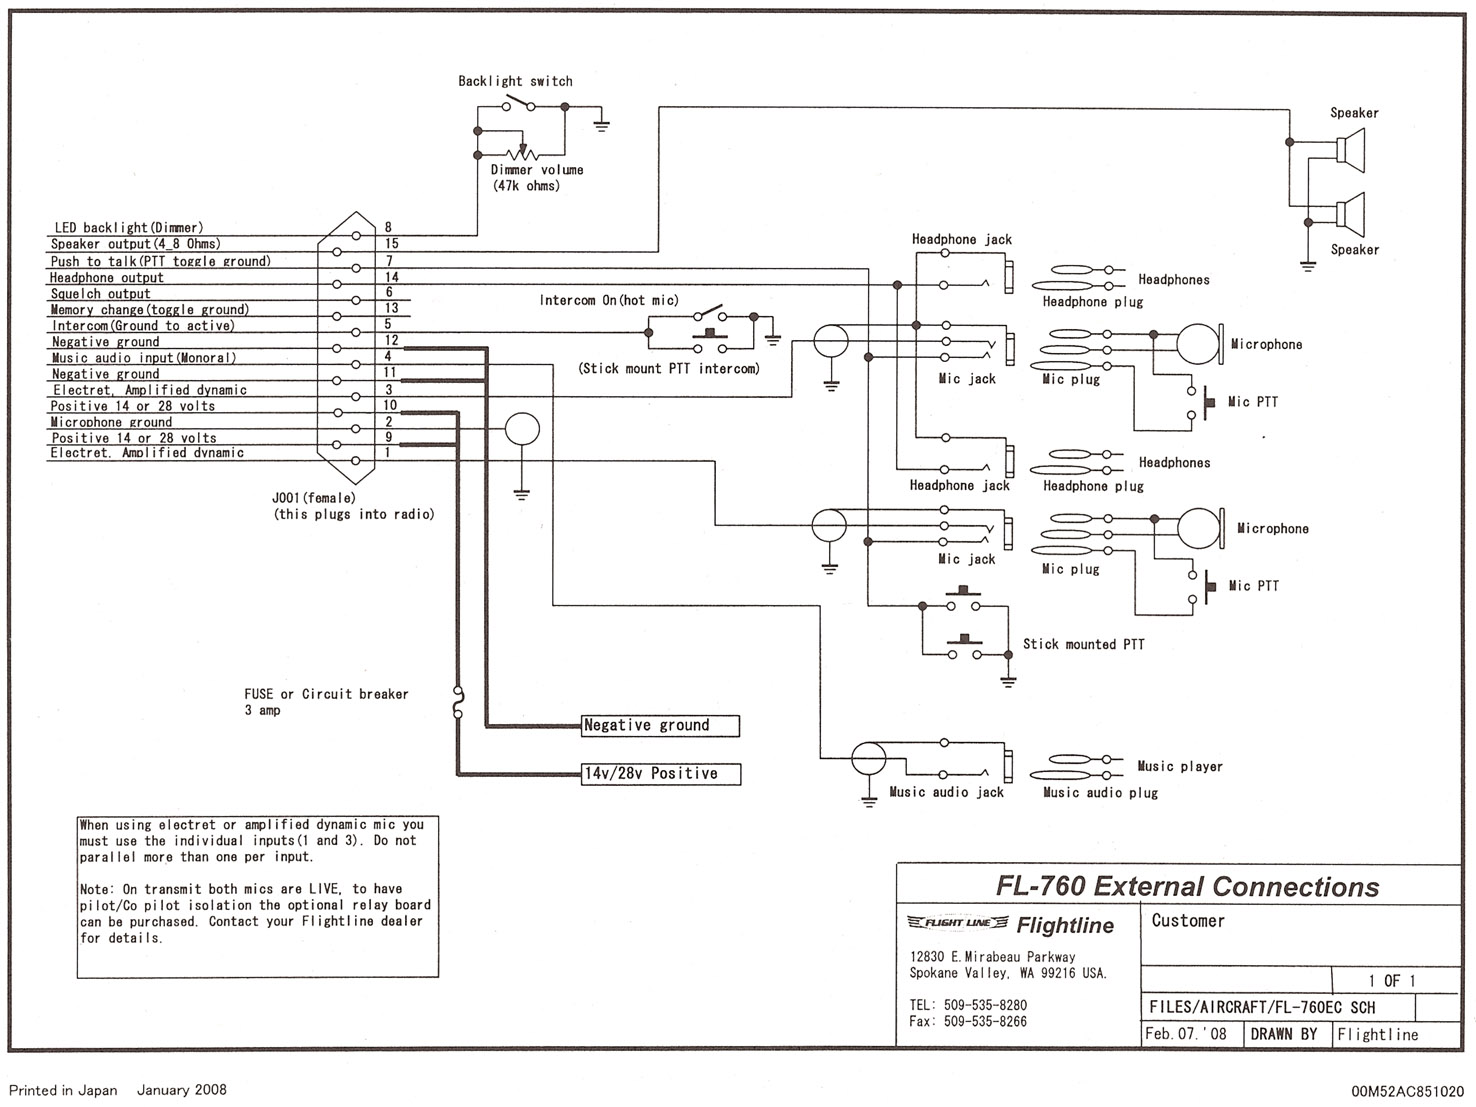 fl_760_wiring_diagram_934?resize\\\=665%2C499 narco com 11a wiring diagram narco 810 pinout \u2022 indy500 co narco 810 wiring diagram at gsmx.co